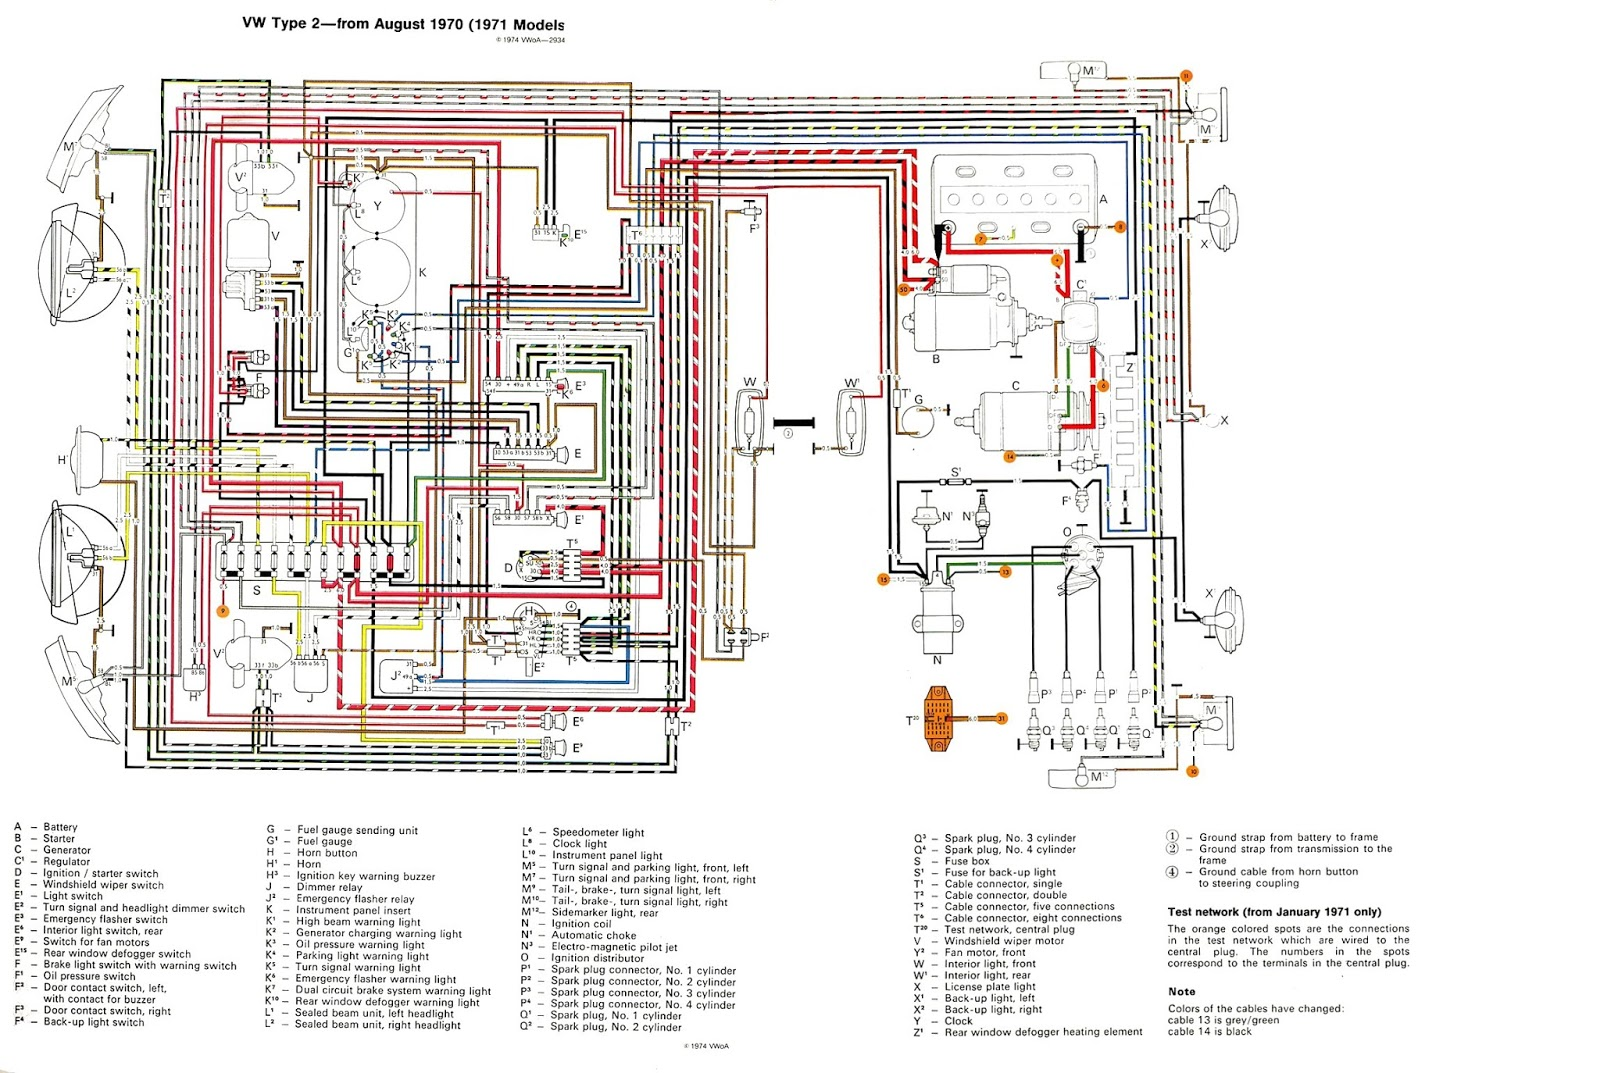 vw subaru conversion wiring diagram vw image vw subaru conversion diagram schematic all about repair and on vw subaru conversion wiring diagram